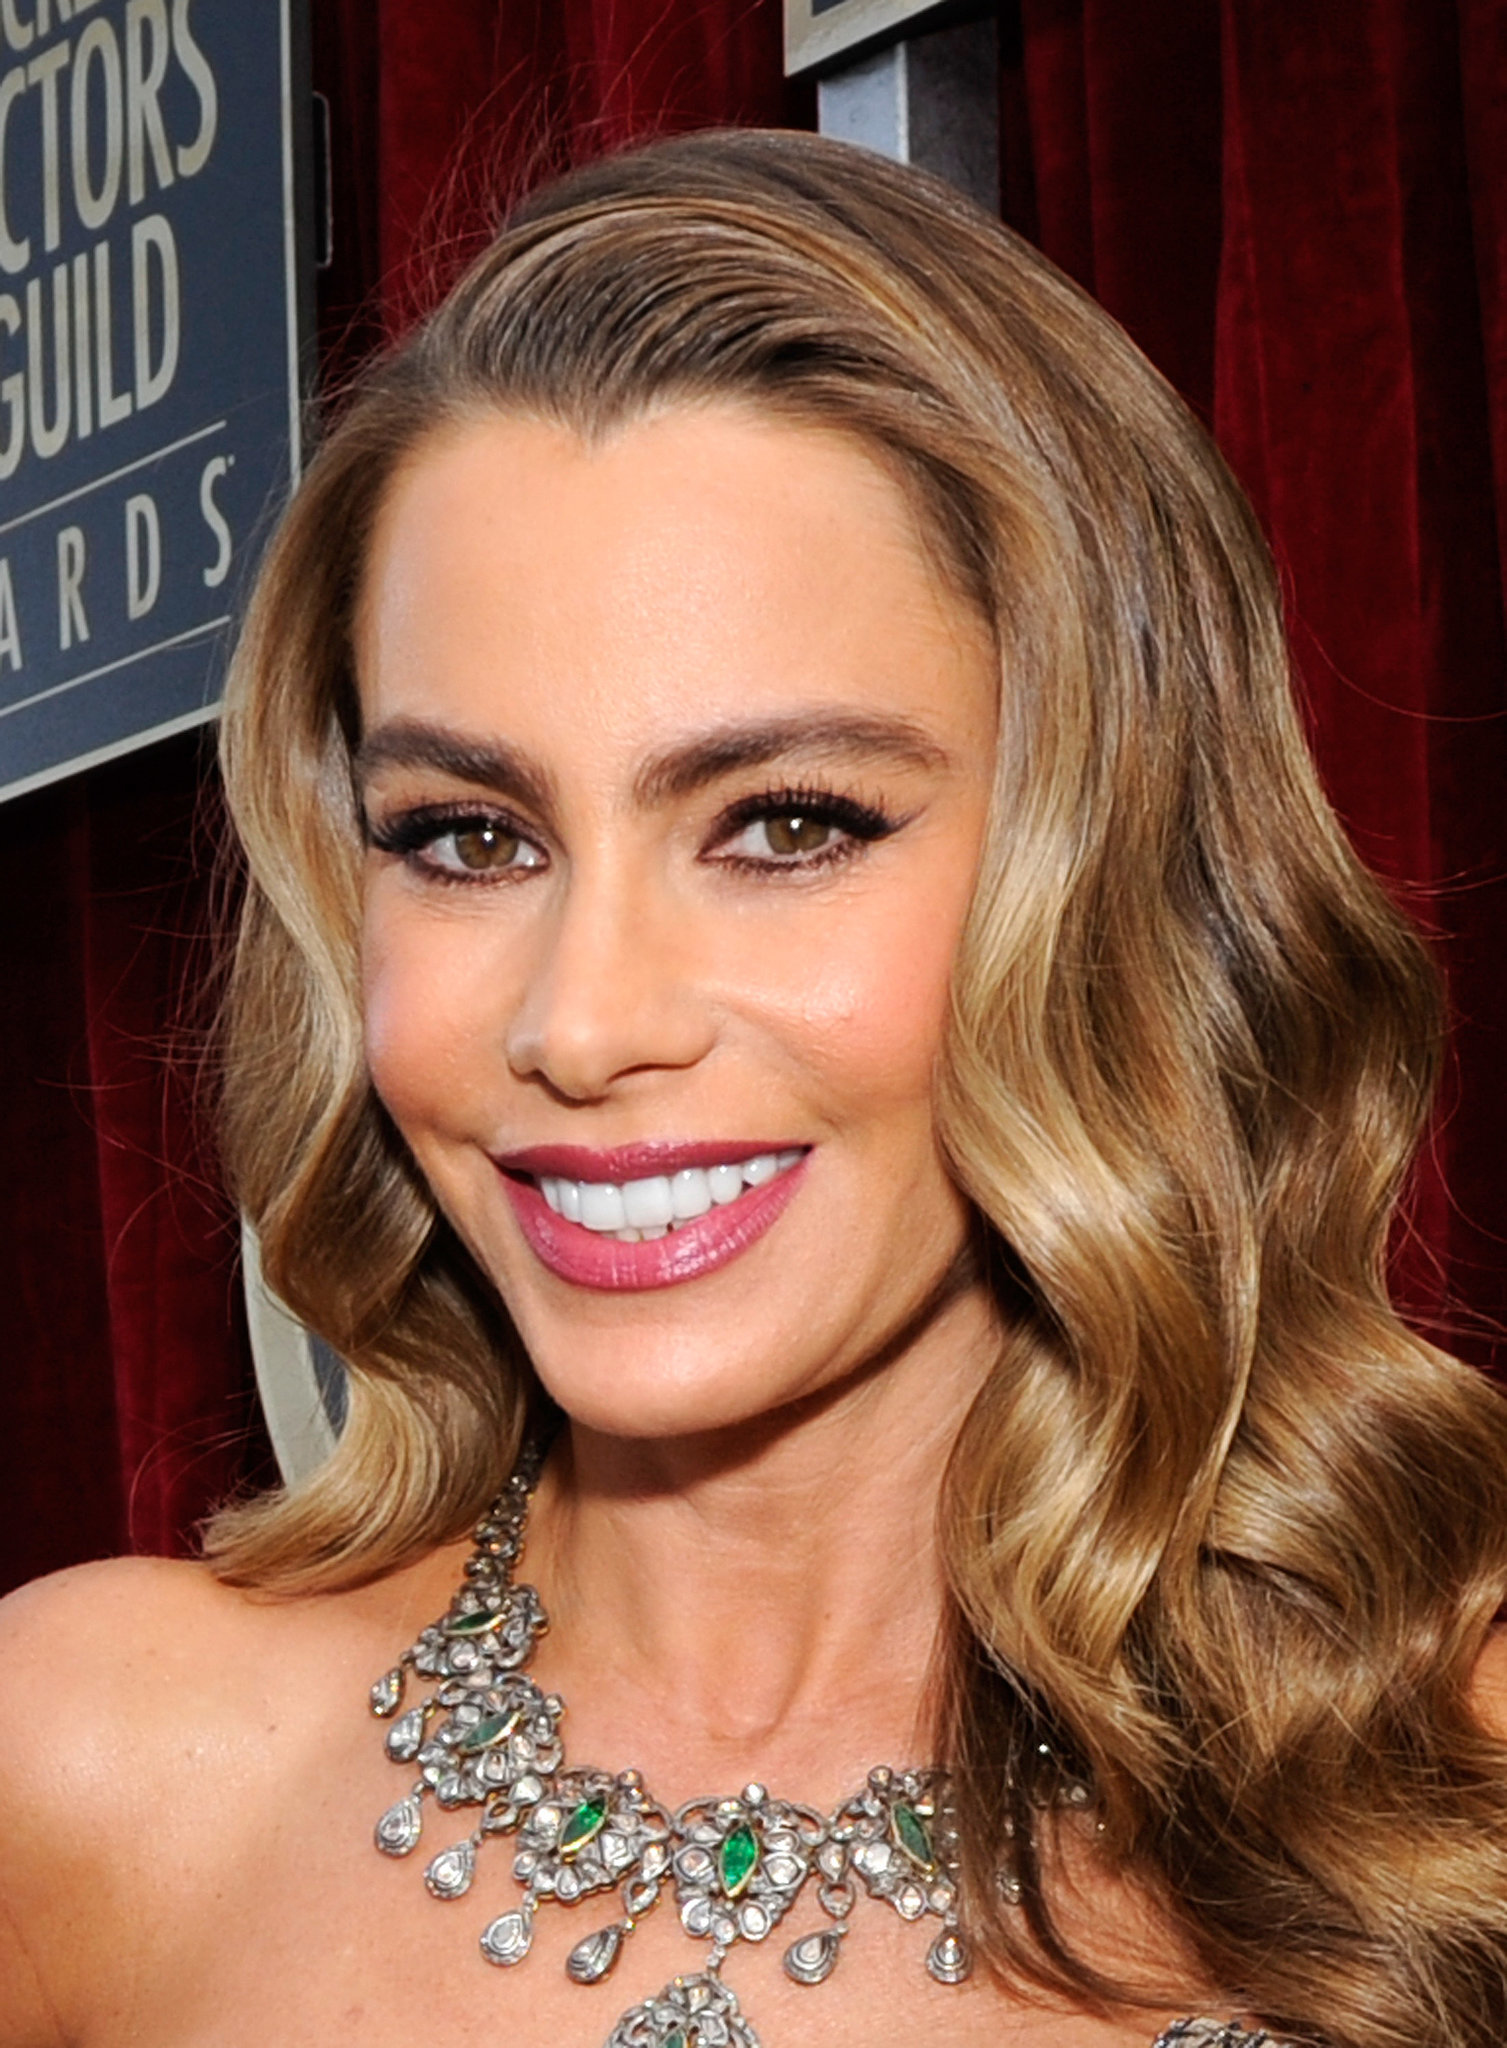 Sofia Vergara Is Very Happy About Her SAG Win